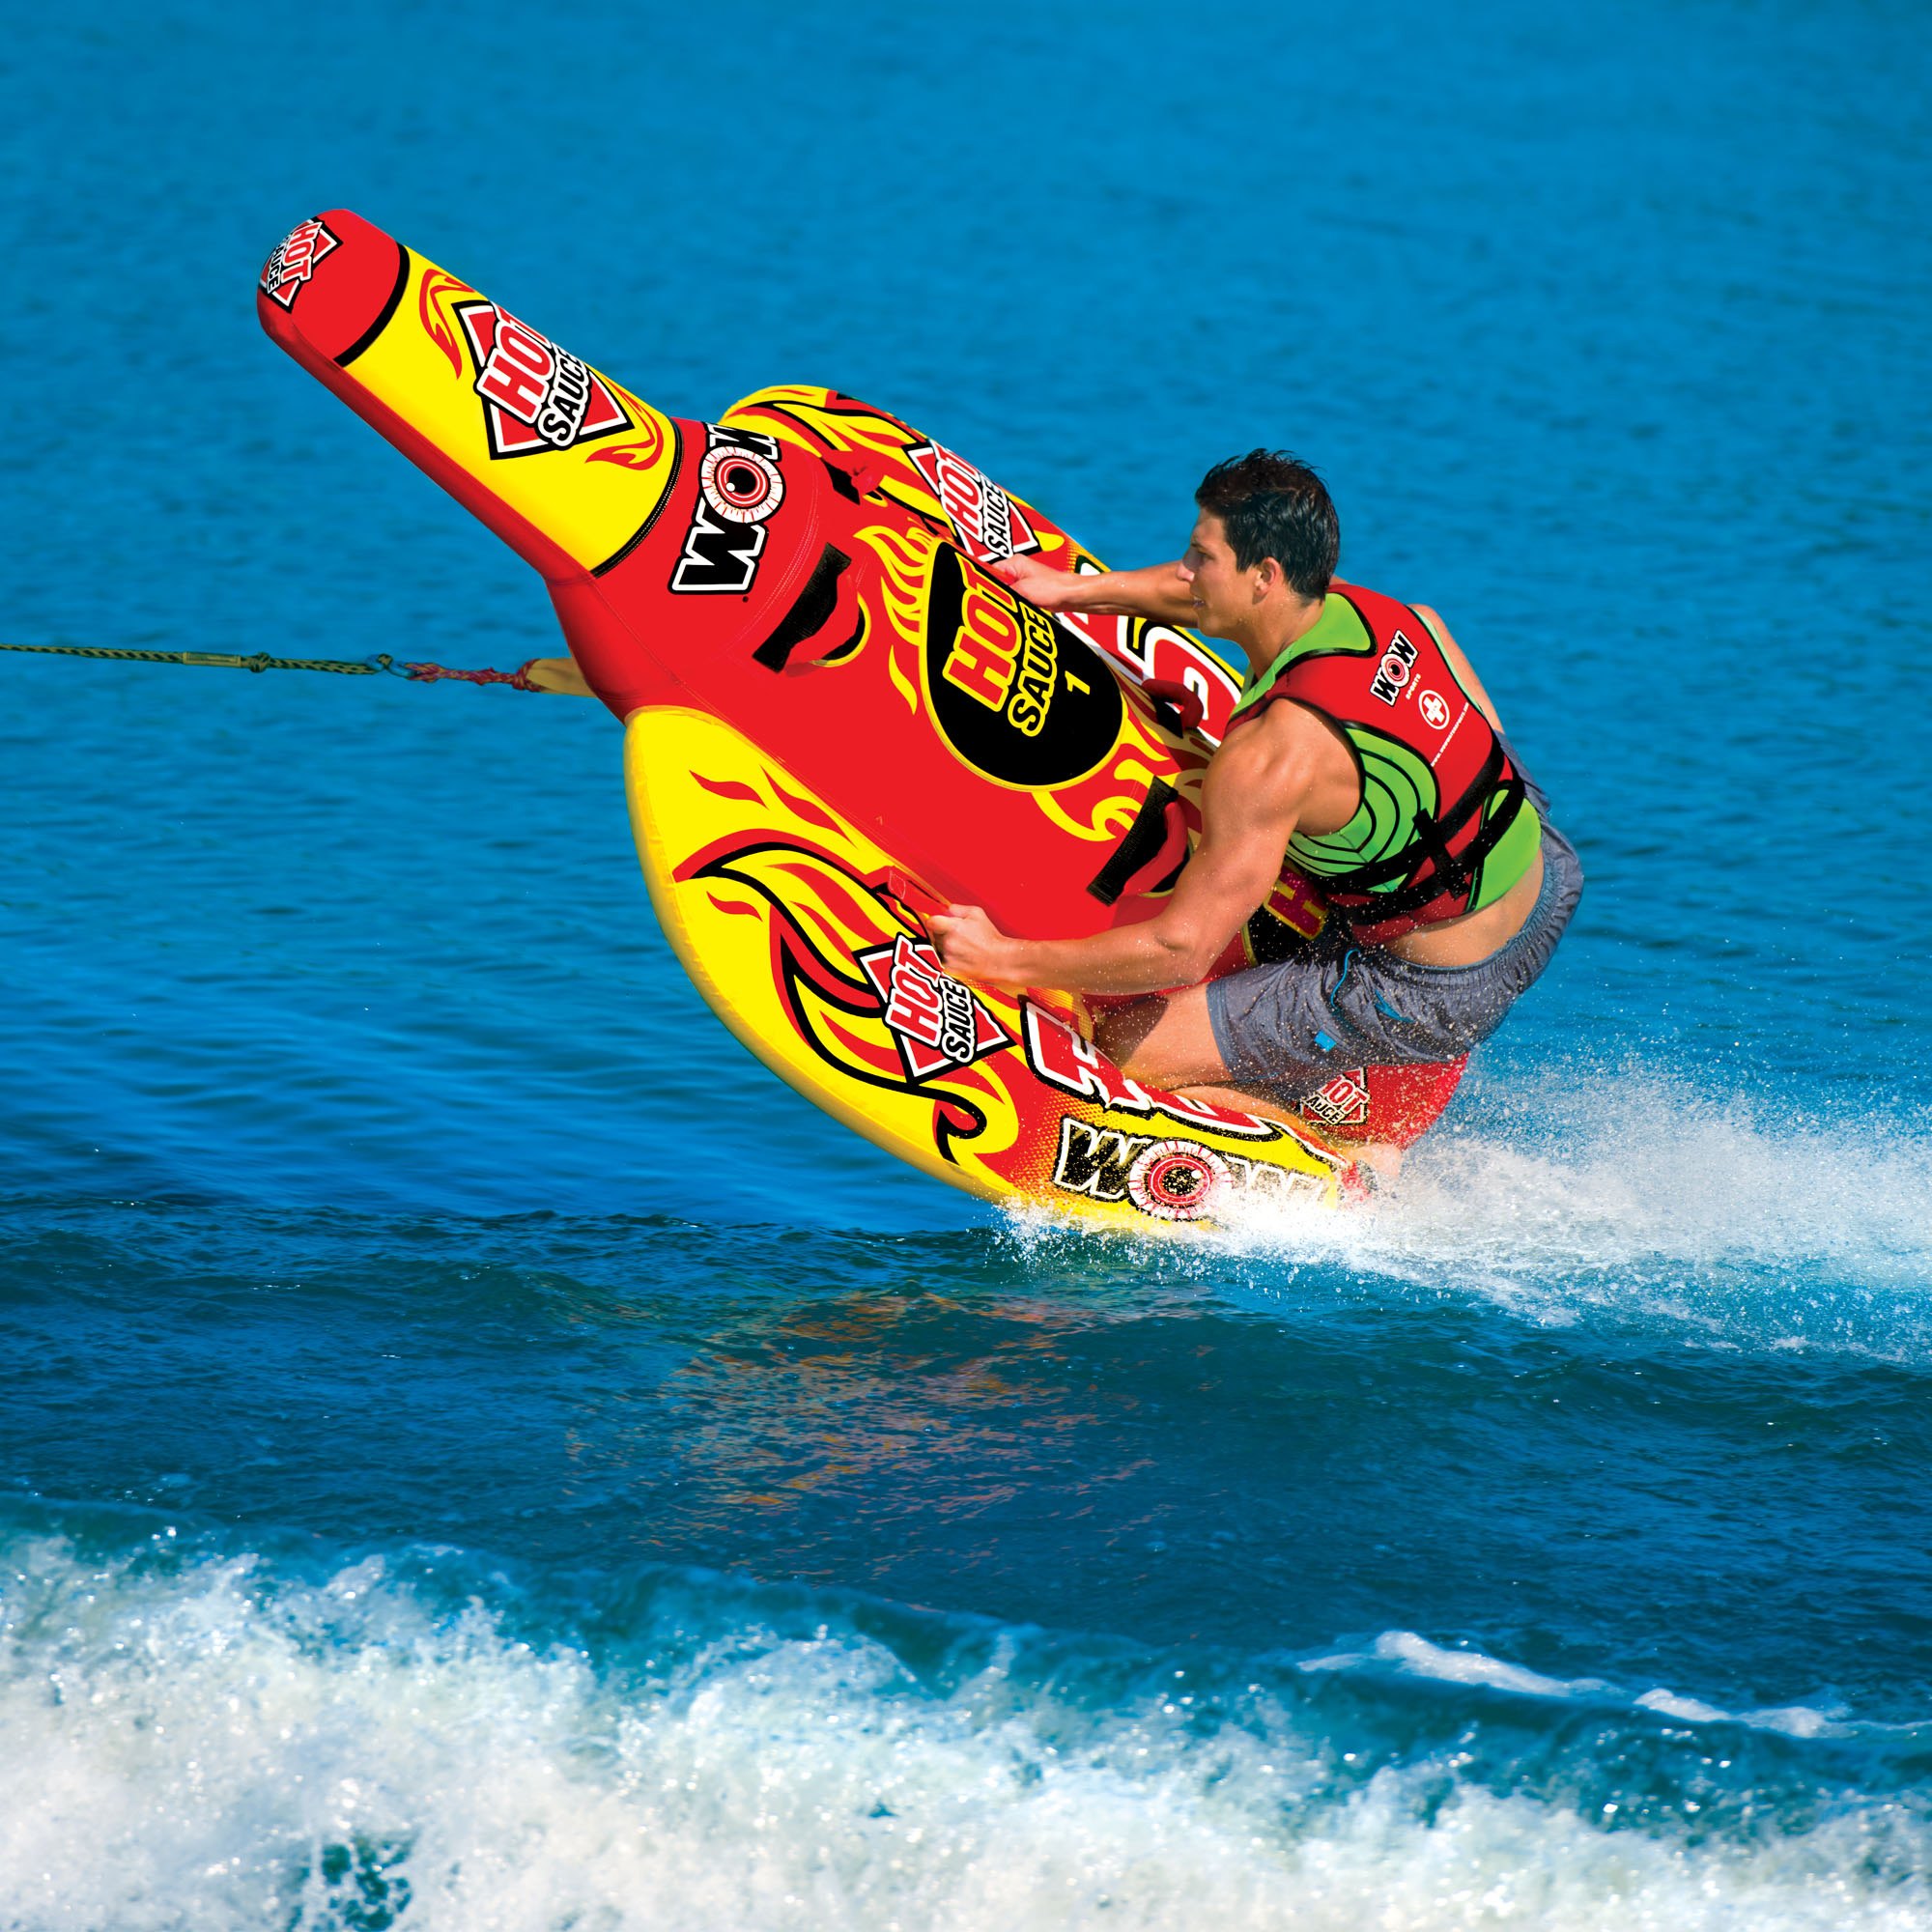 Hot Sauce Wow World Of Watersports